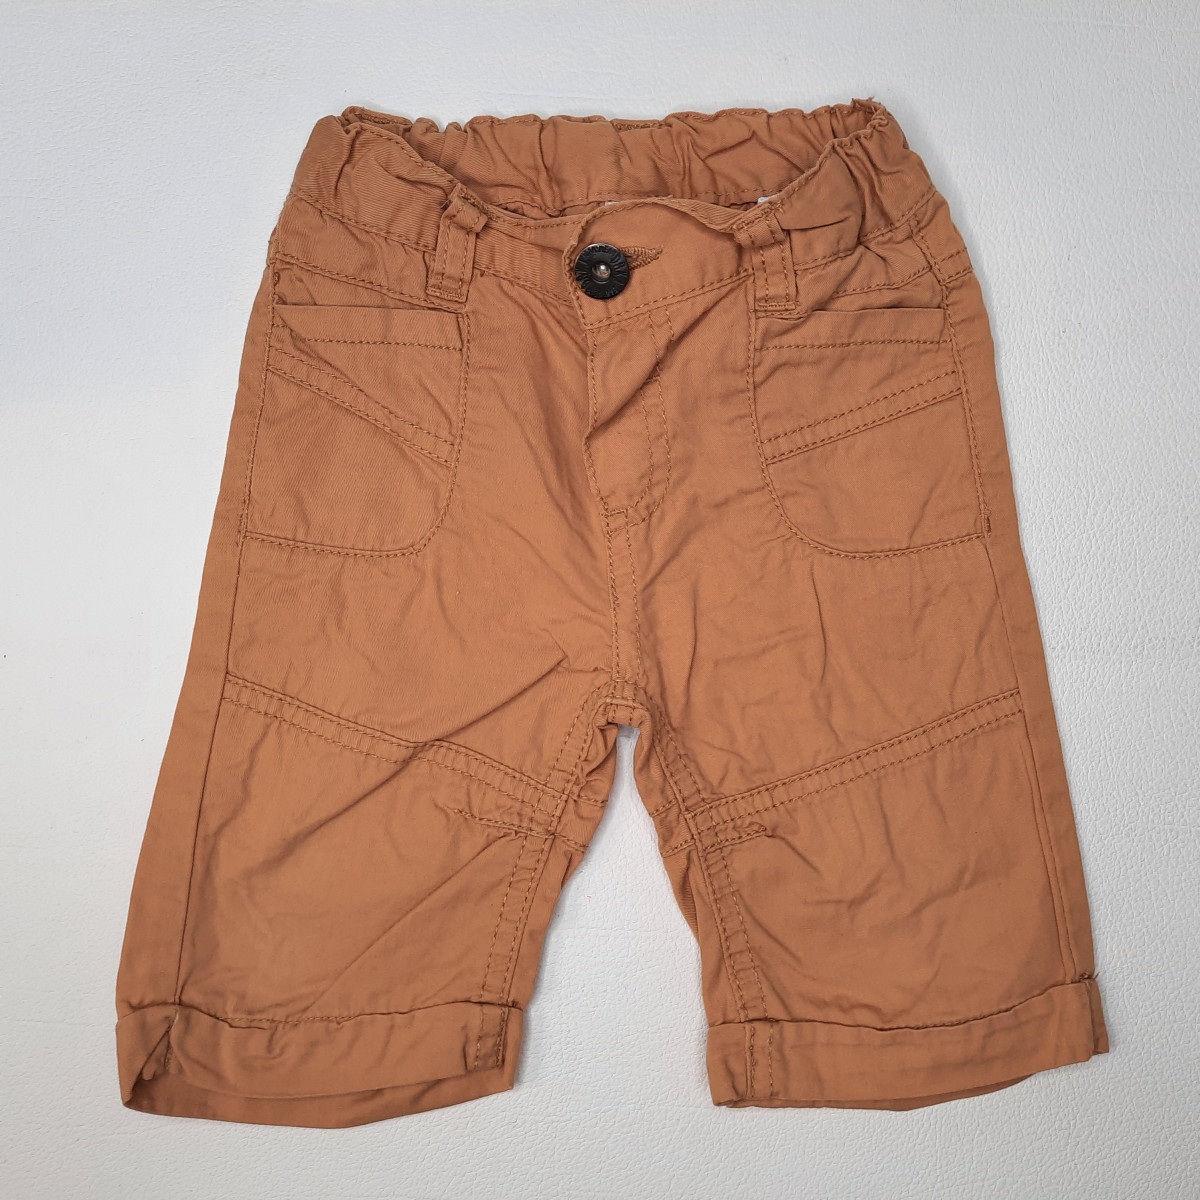 Shorts, Bermudas - photo 36